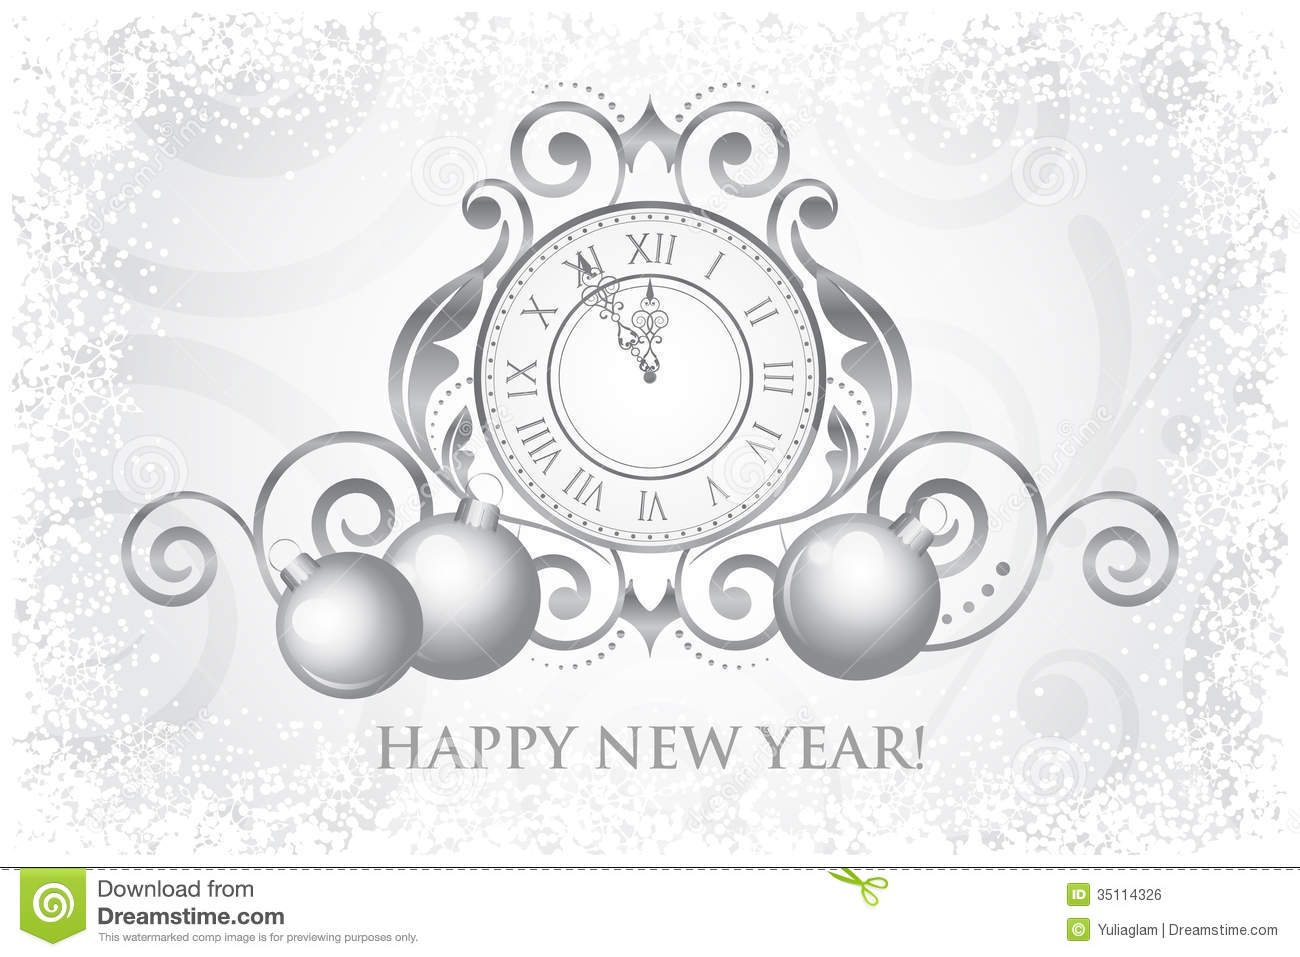 happy new year card with clock and decorations